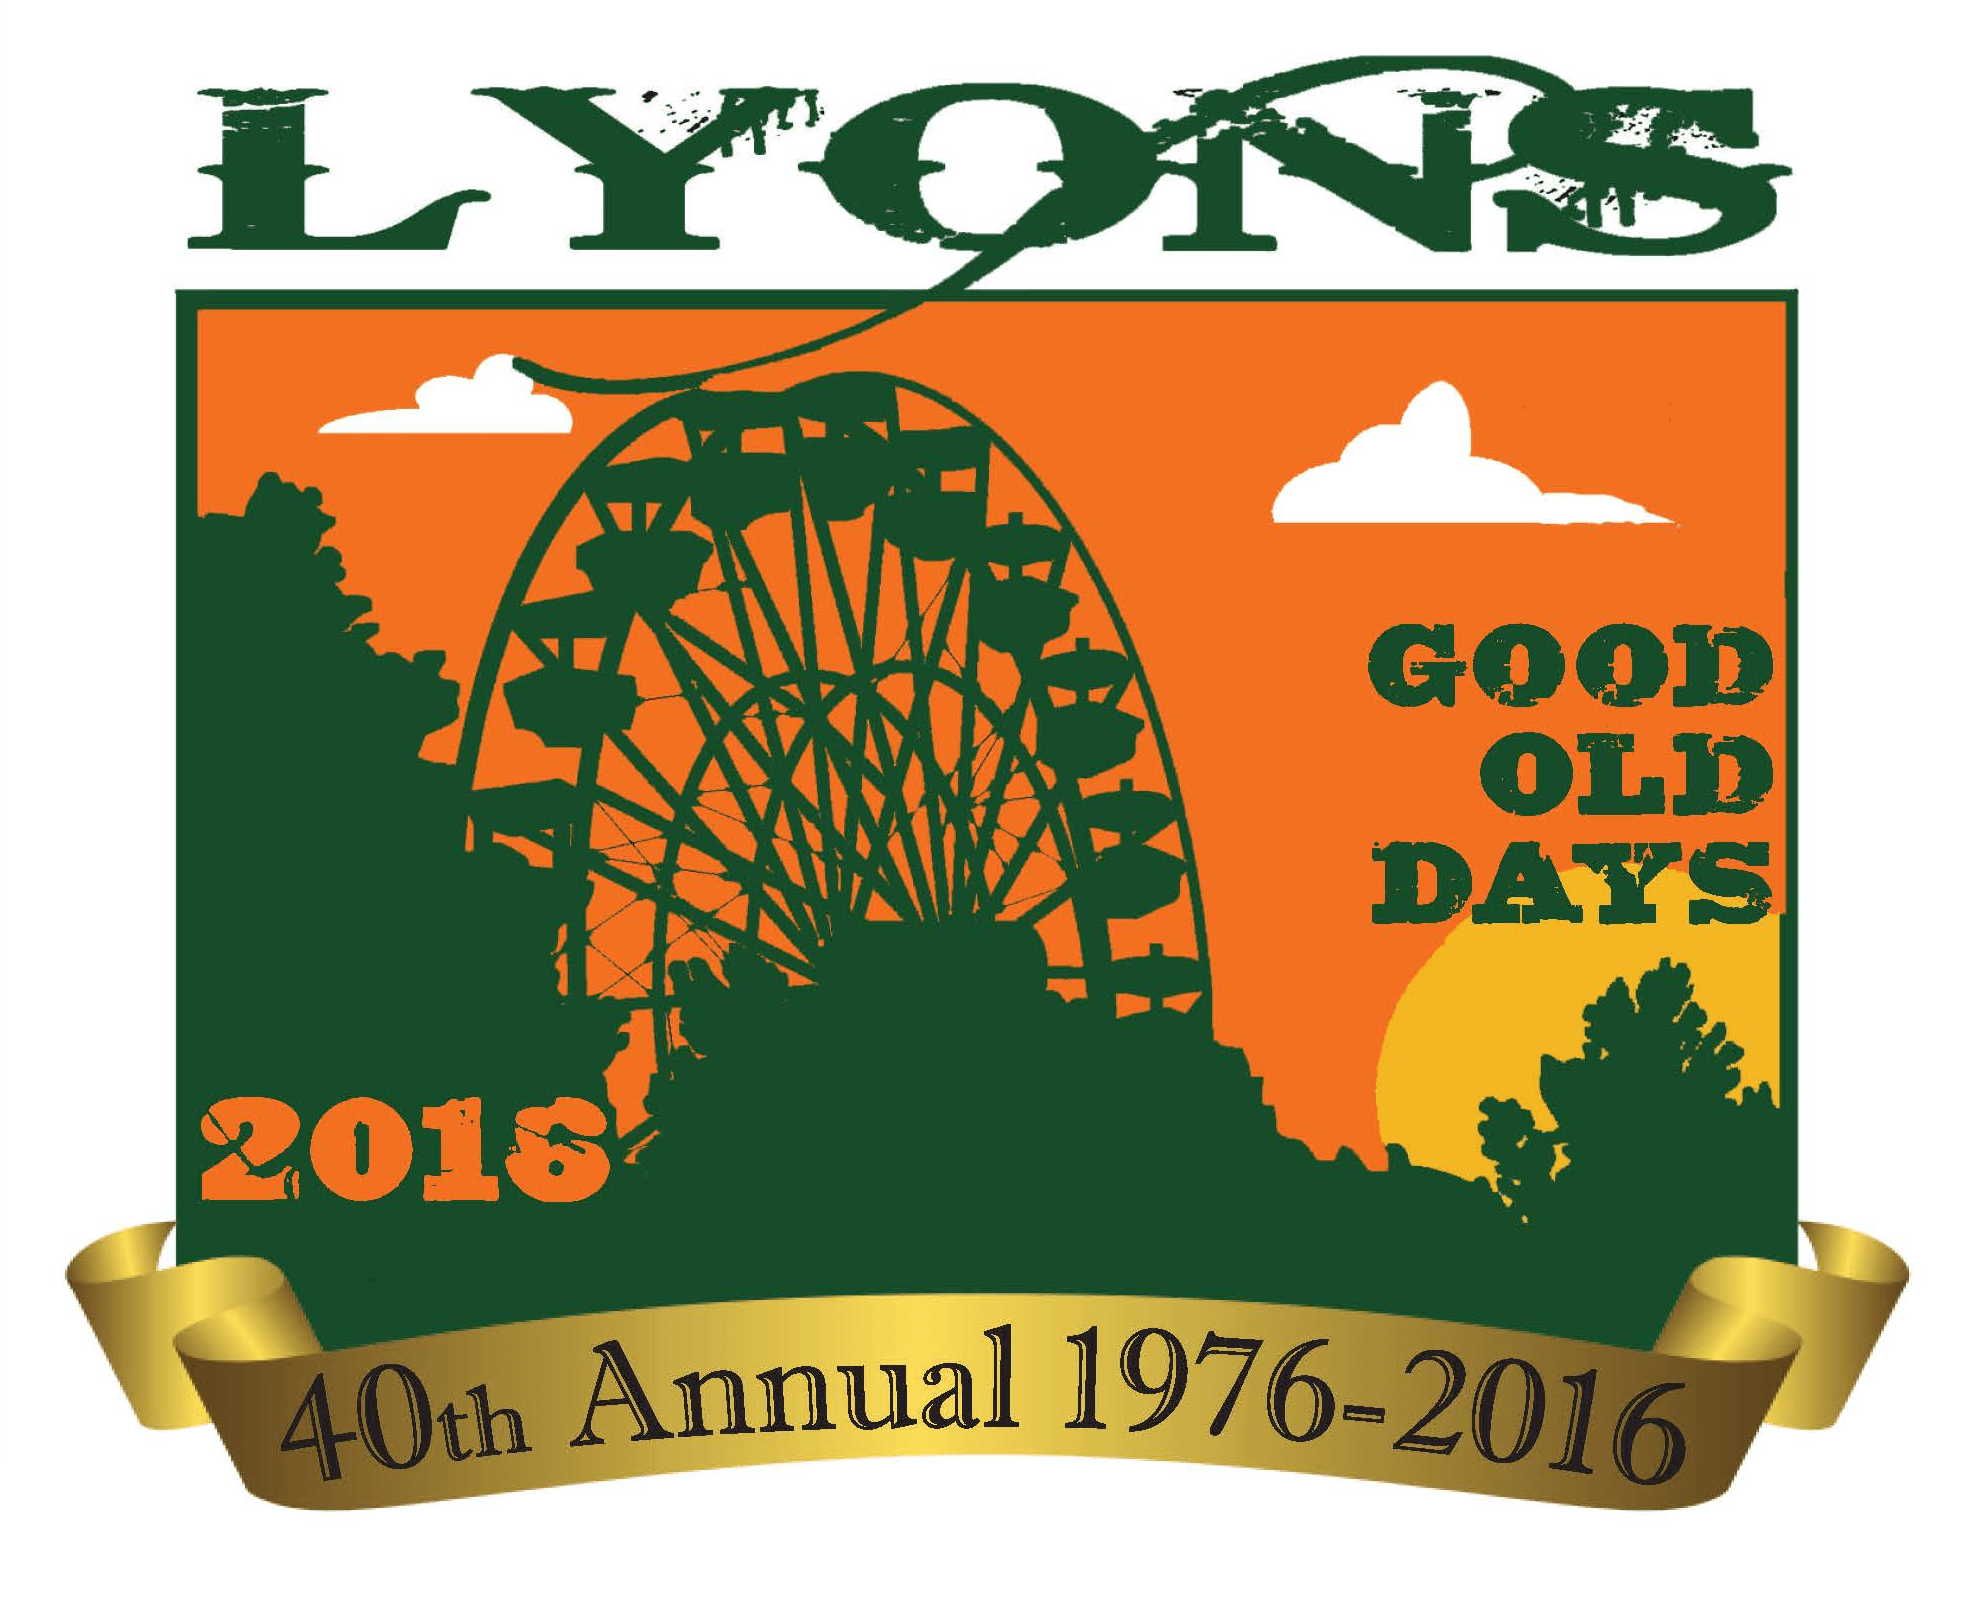 2016 GOD 40th Annual banner